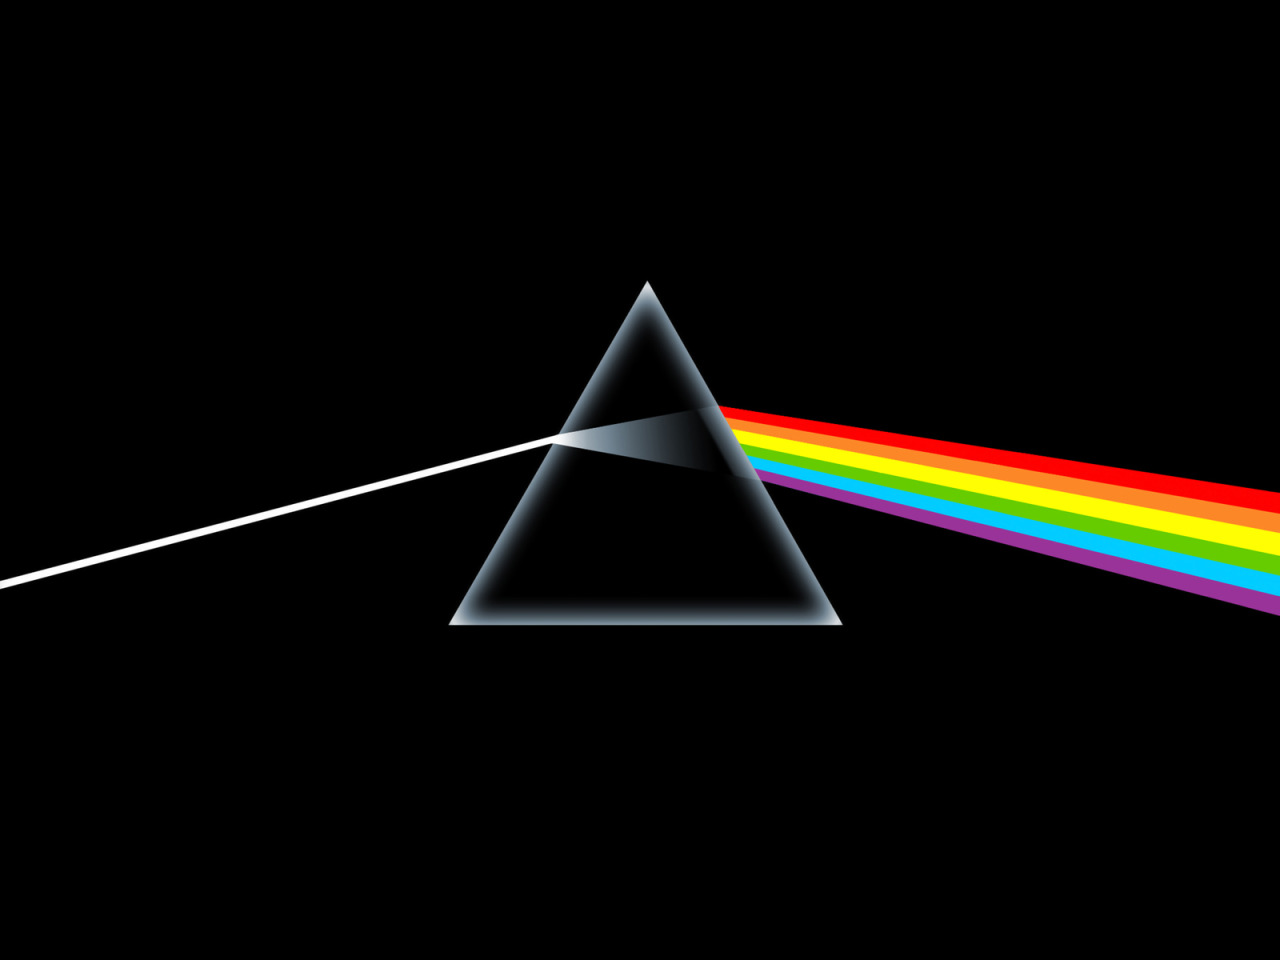 According to the BBC, Storm Thorgerson, whose album cover artwork includes Pink Floyd's The Dark Side of the Moon, has died at age 69.